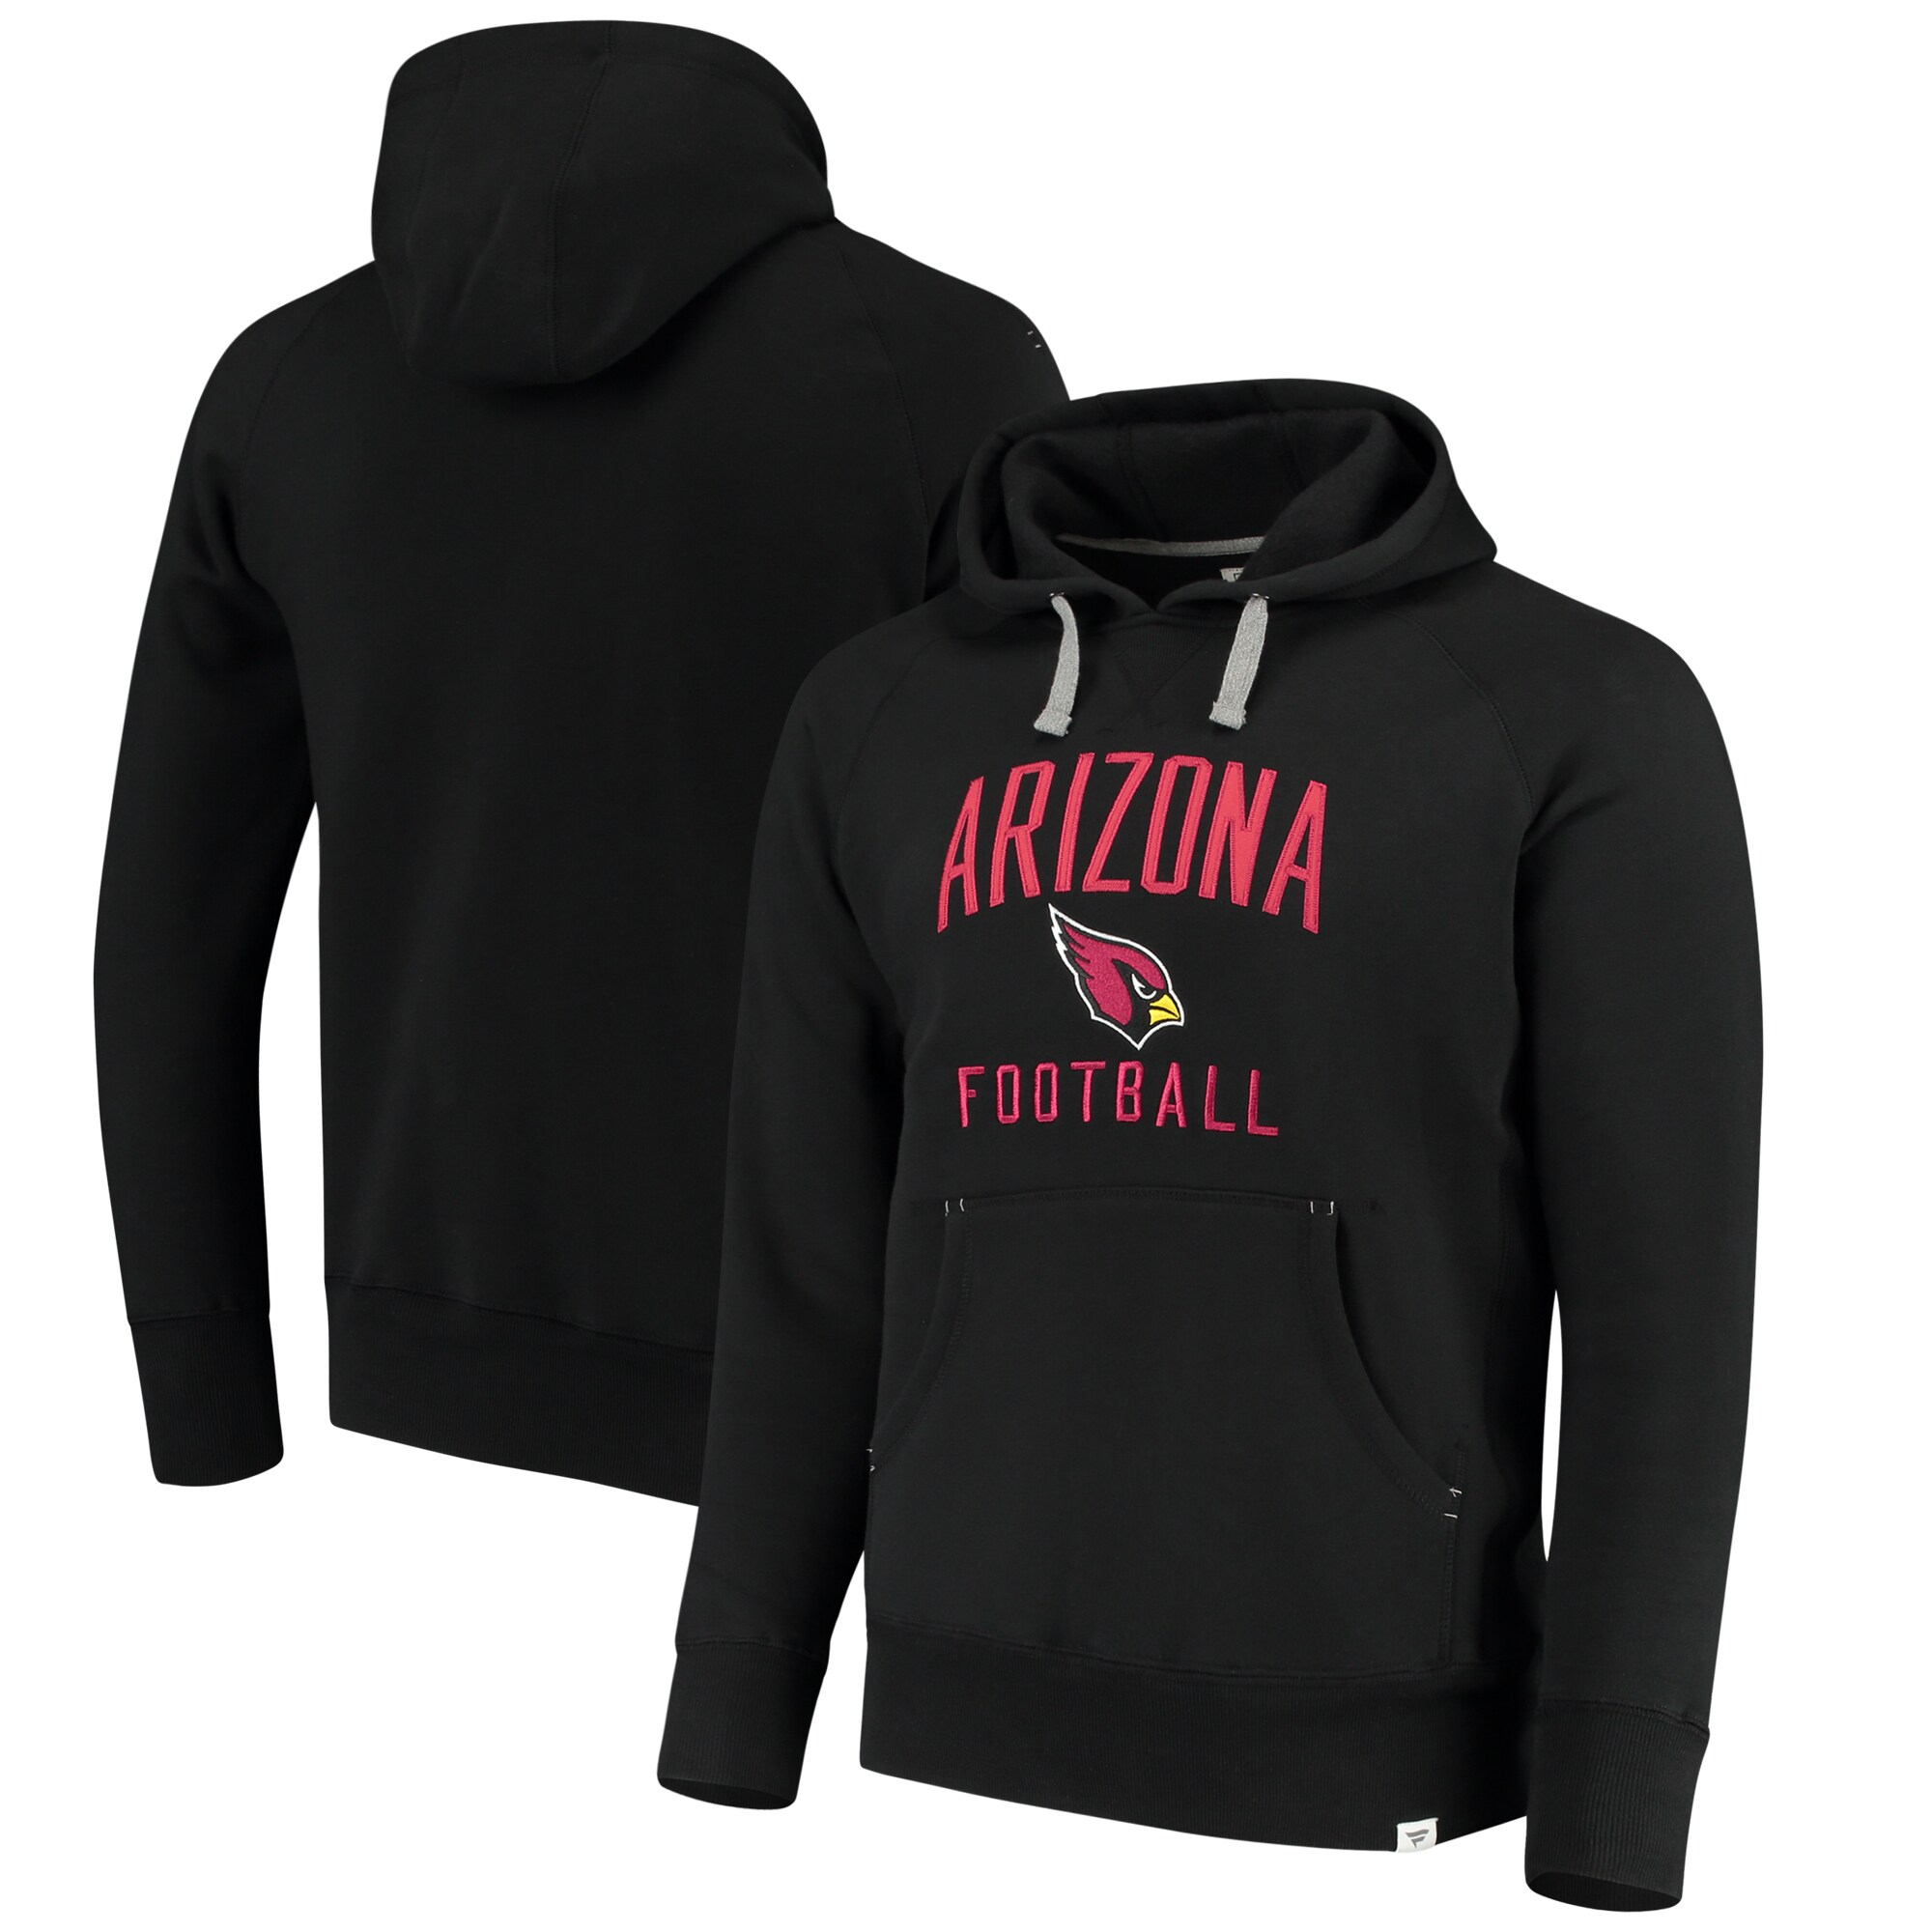 Arizona Cardinals NFL Pro Line by Fanatics Branded Indestructible Pullover Hoodie - Black